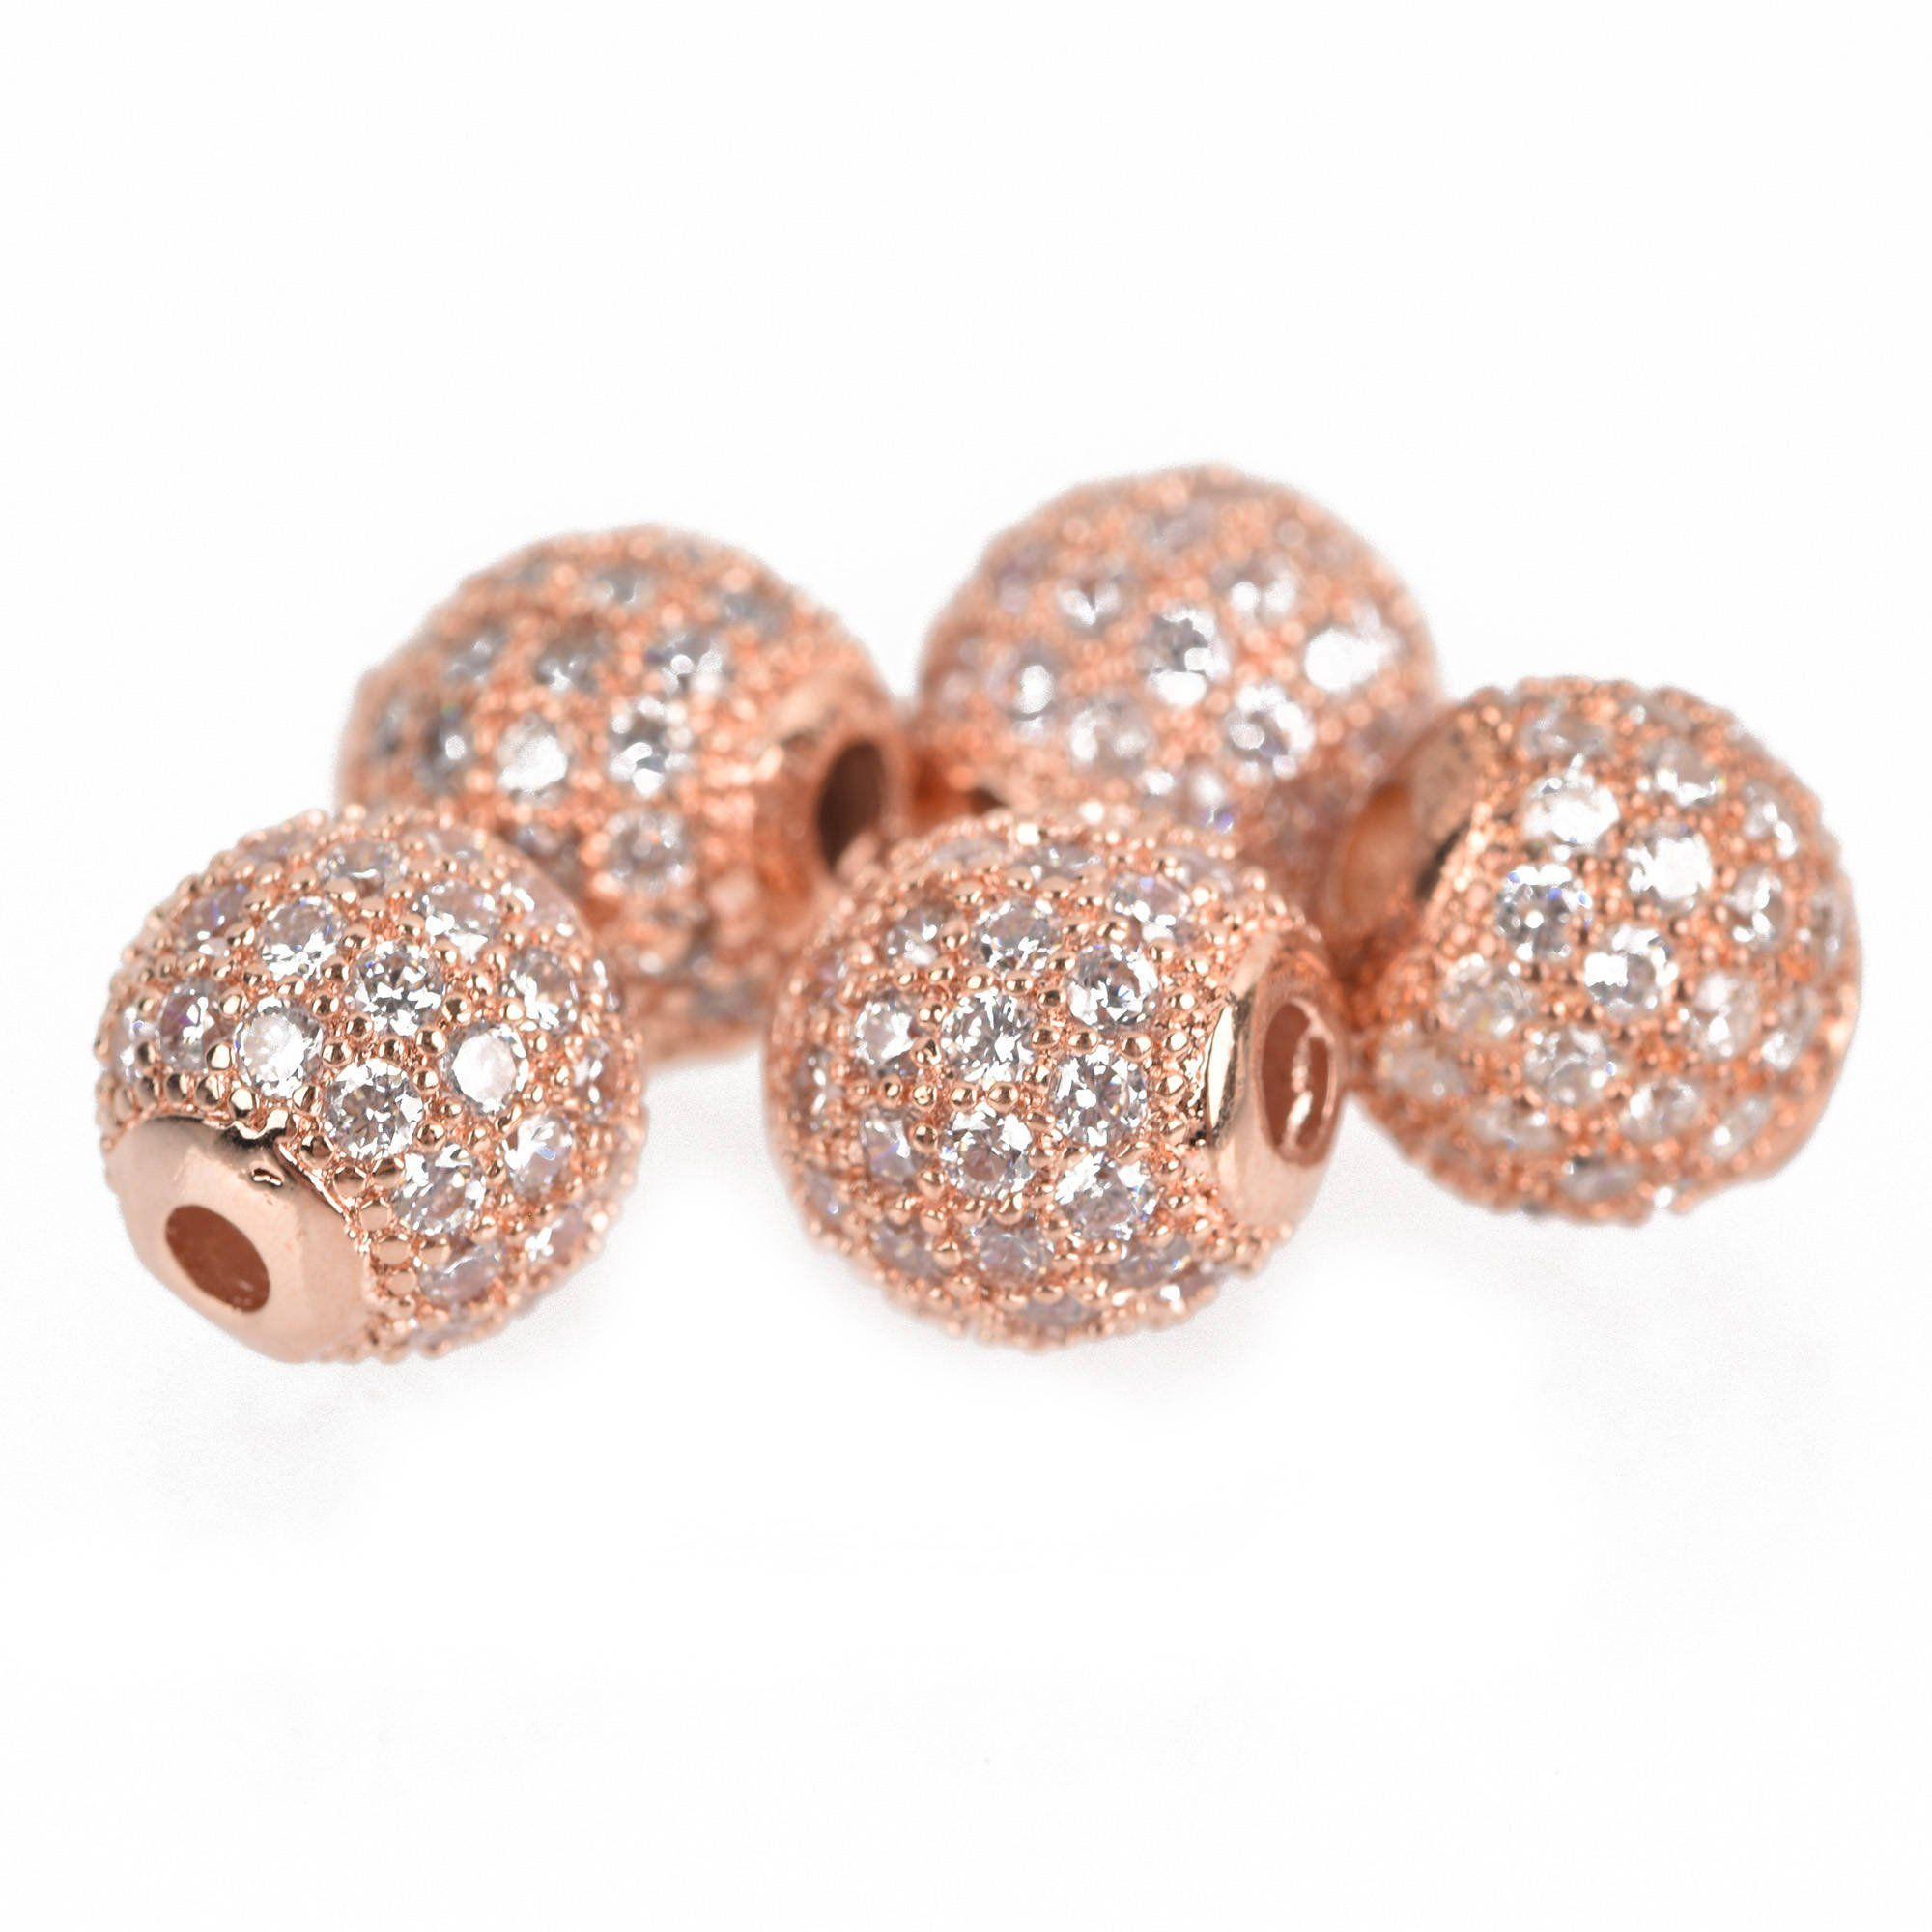 4e0b263af CZ Rose Gold Pave Round Ball, Micro Pave Rose Gold Shamballa Ball beads,  Cubic Zirconia,Rose Gold Pave Bead,1/2/10pcs, 4/5/6/8/10/12/14/16mm